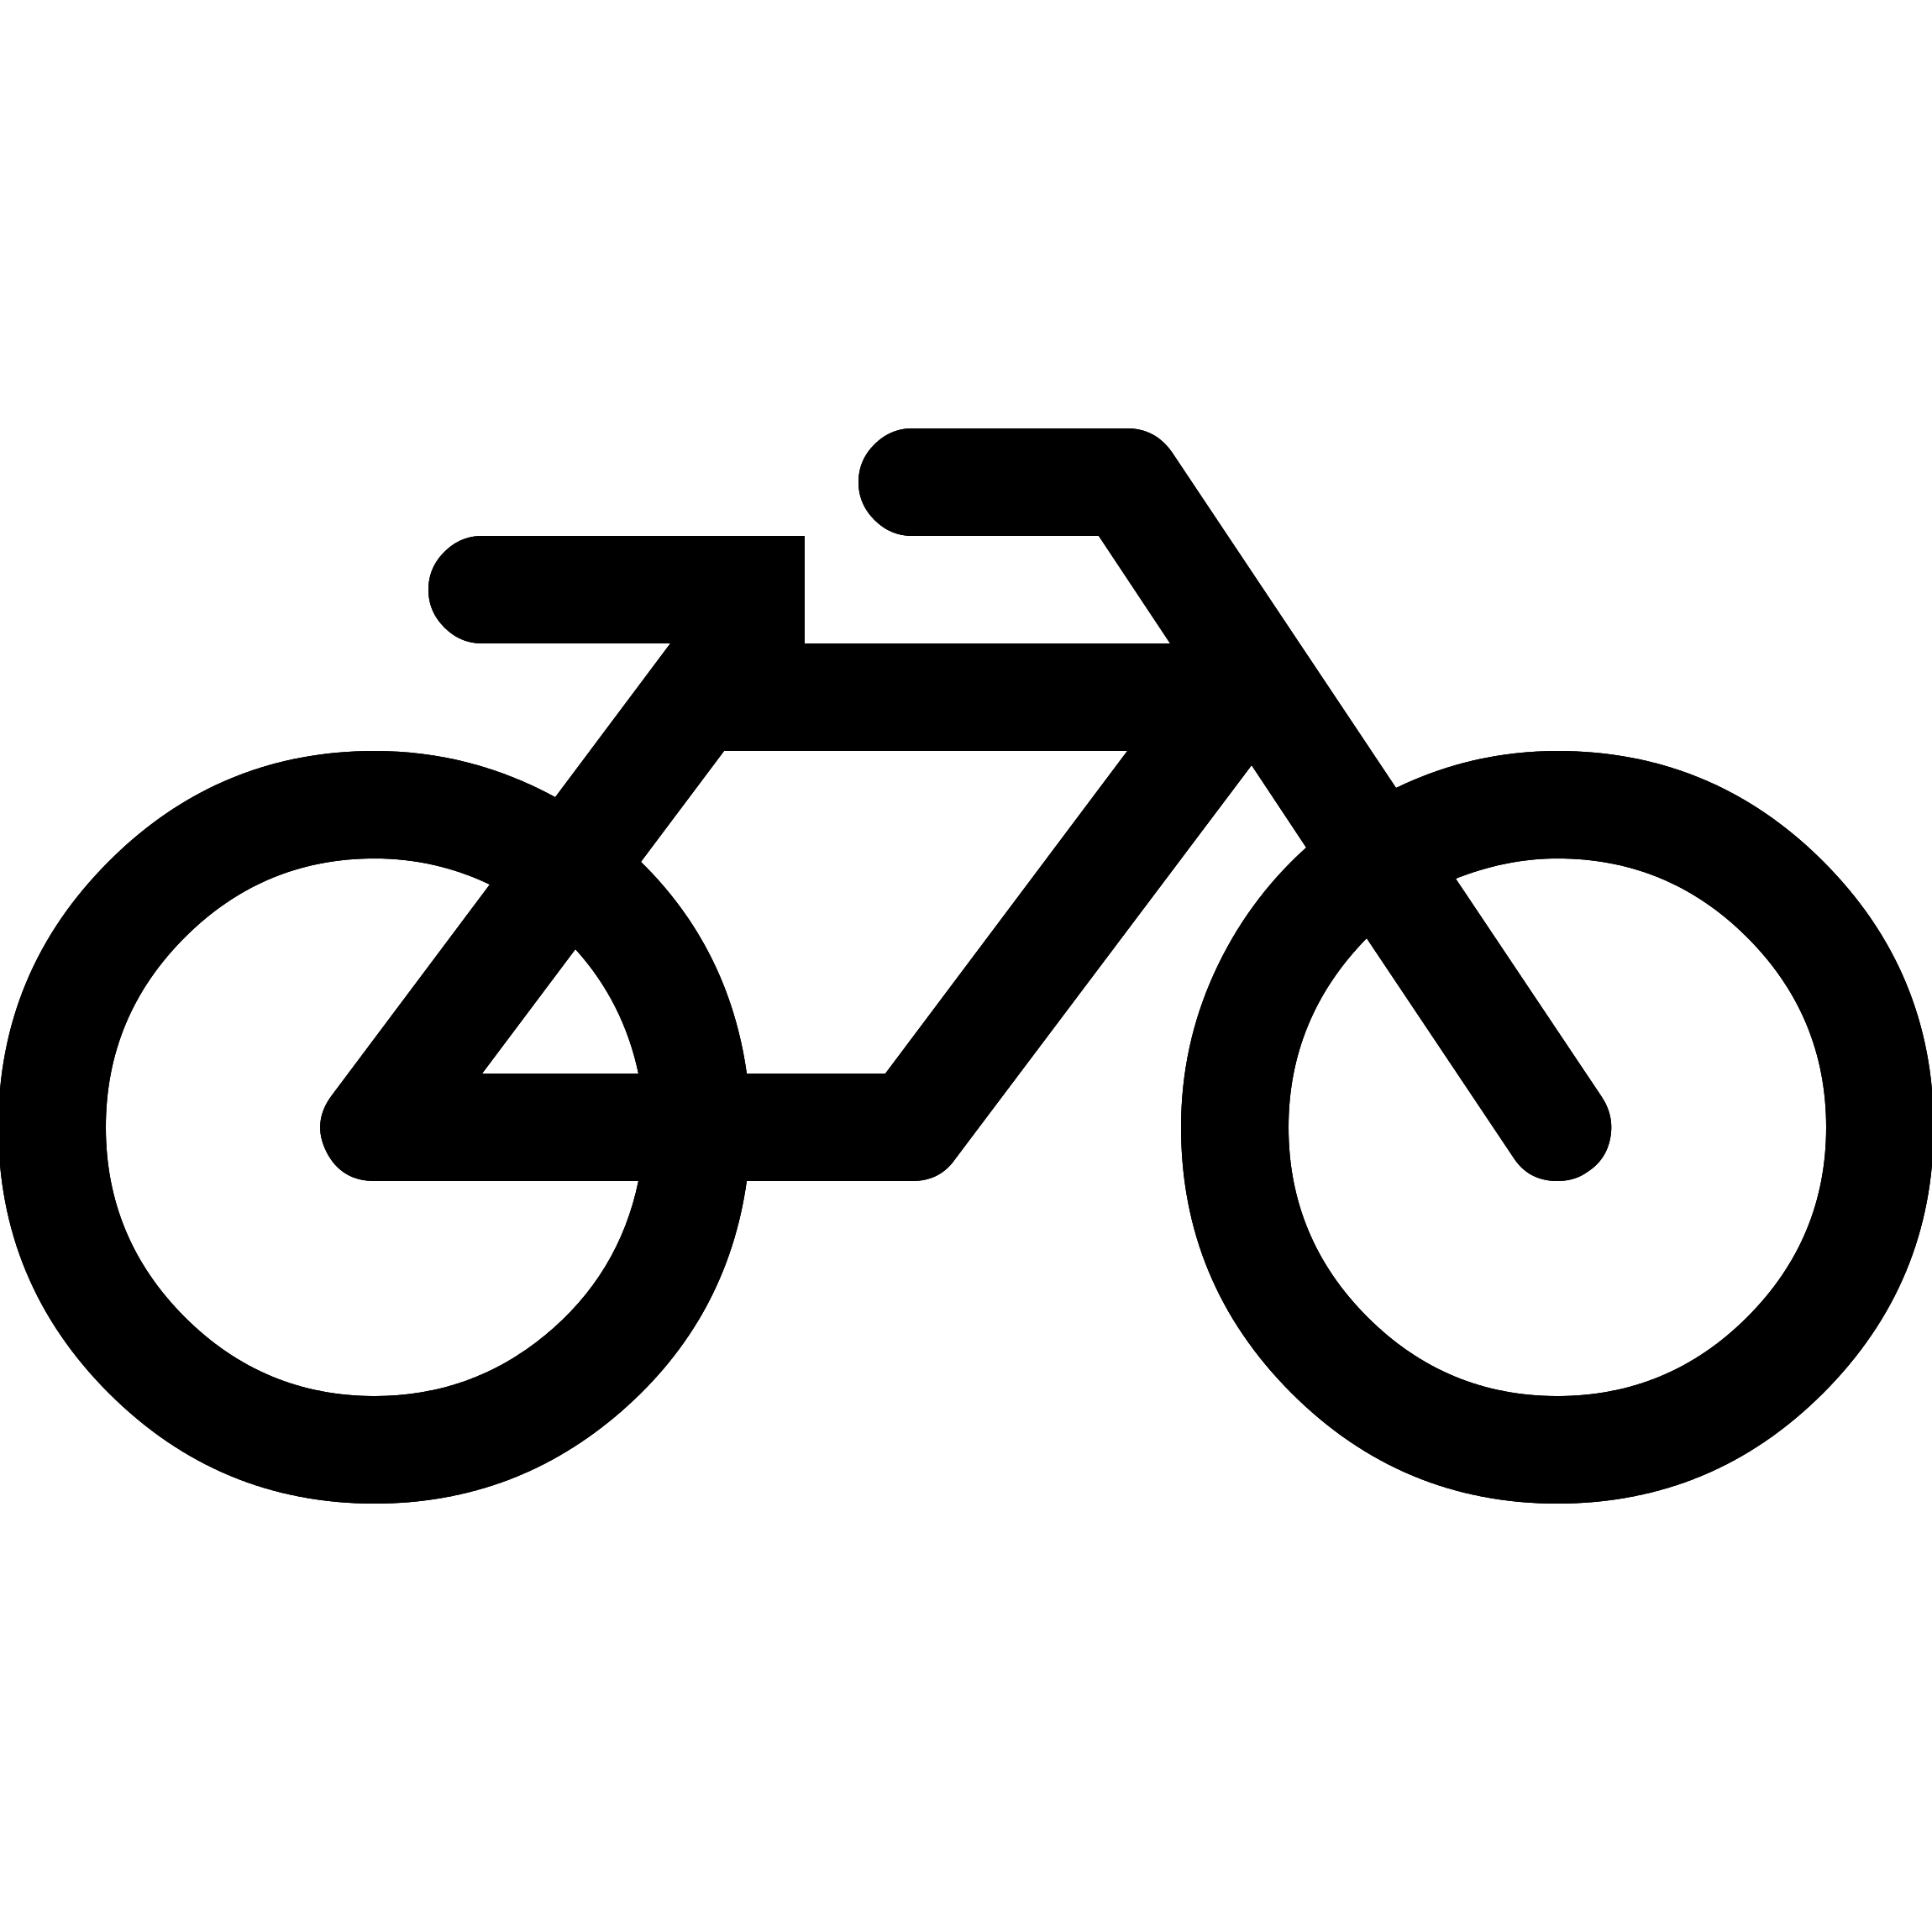 data/images/bicycle.png